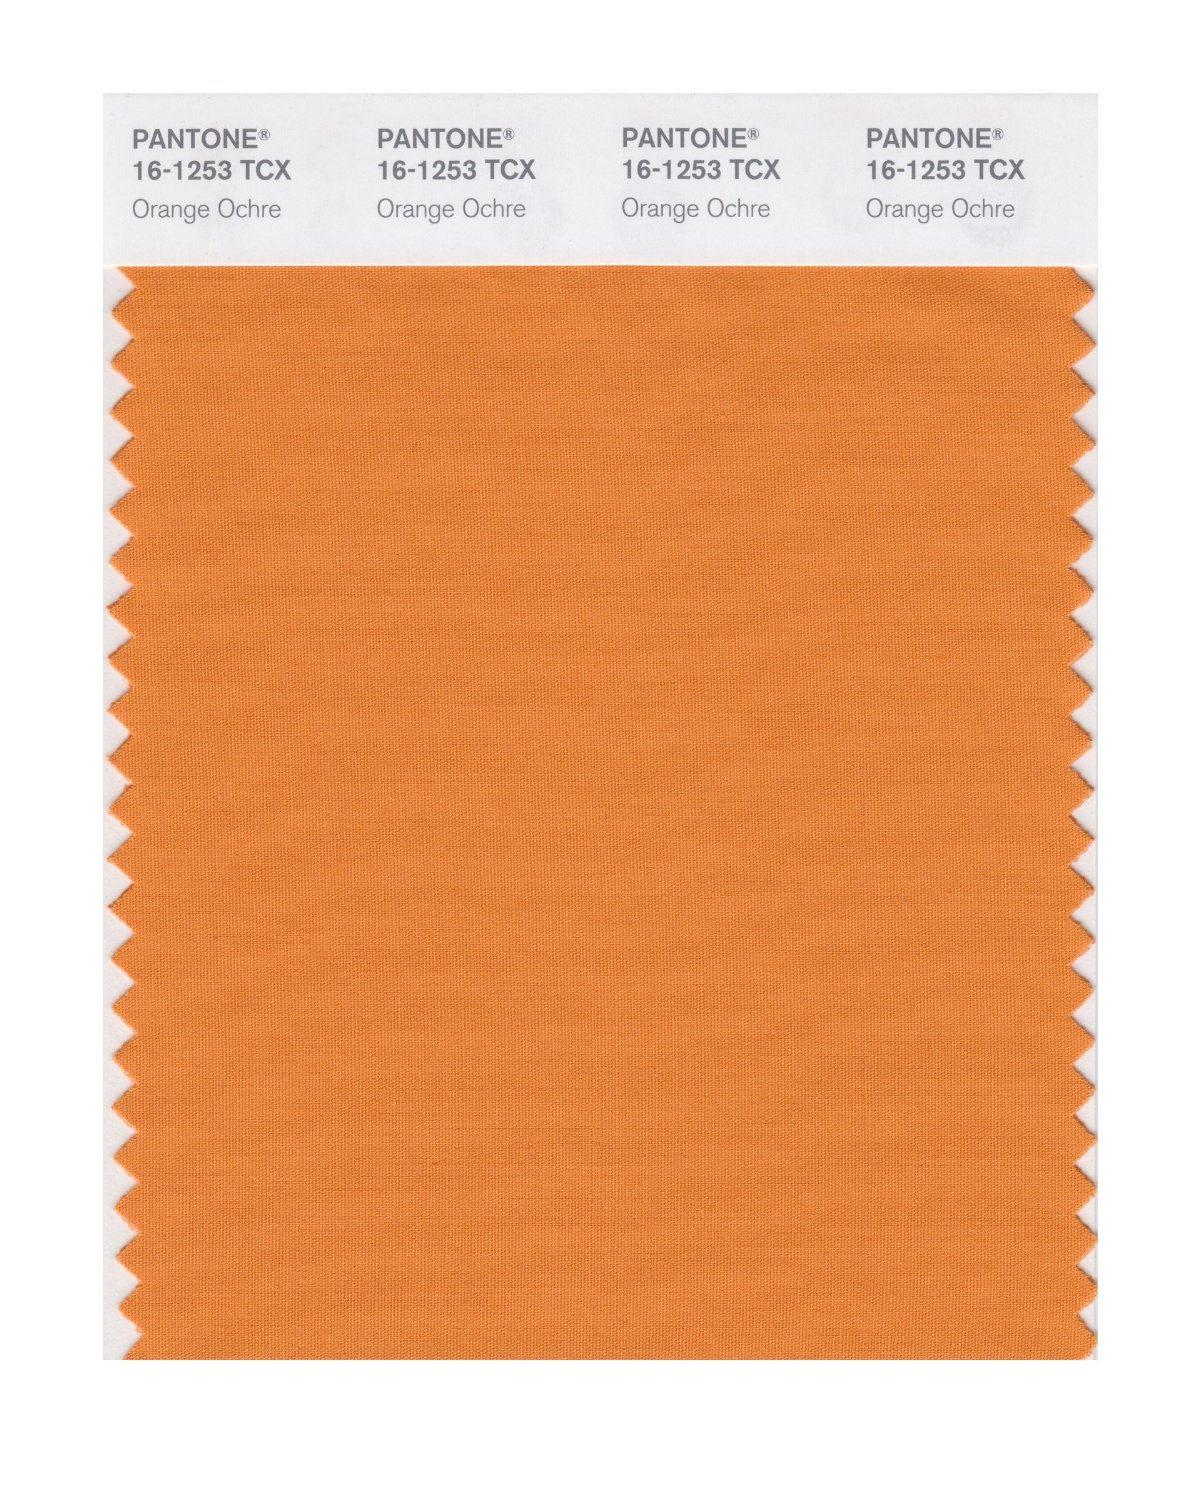 Pantone Smart Swatch 16-1253 Orange Ochre